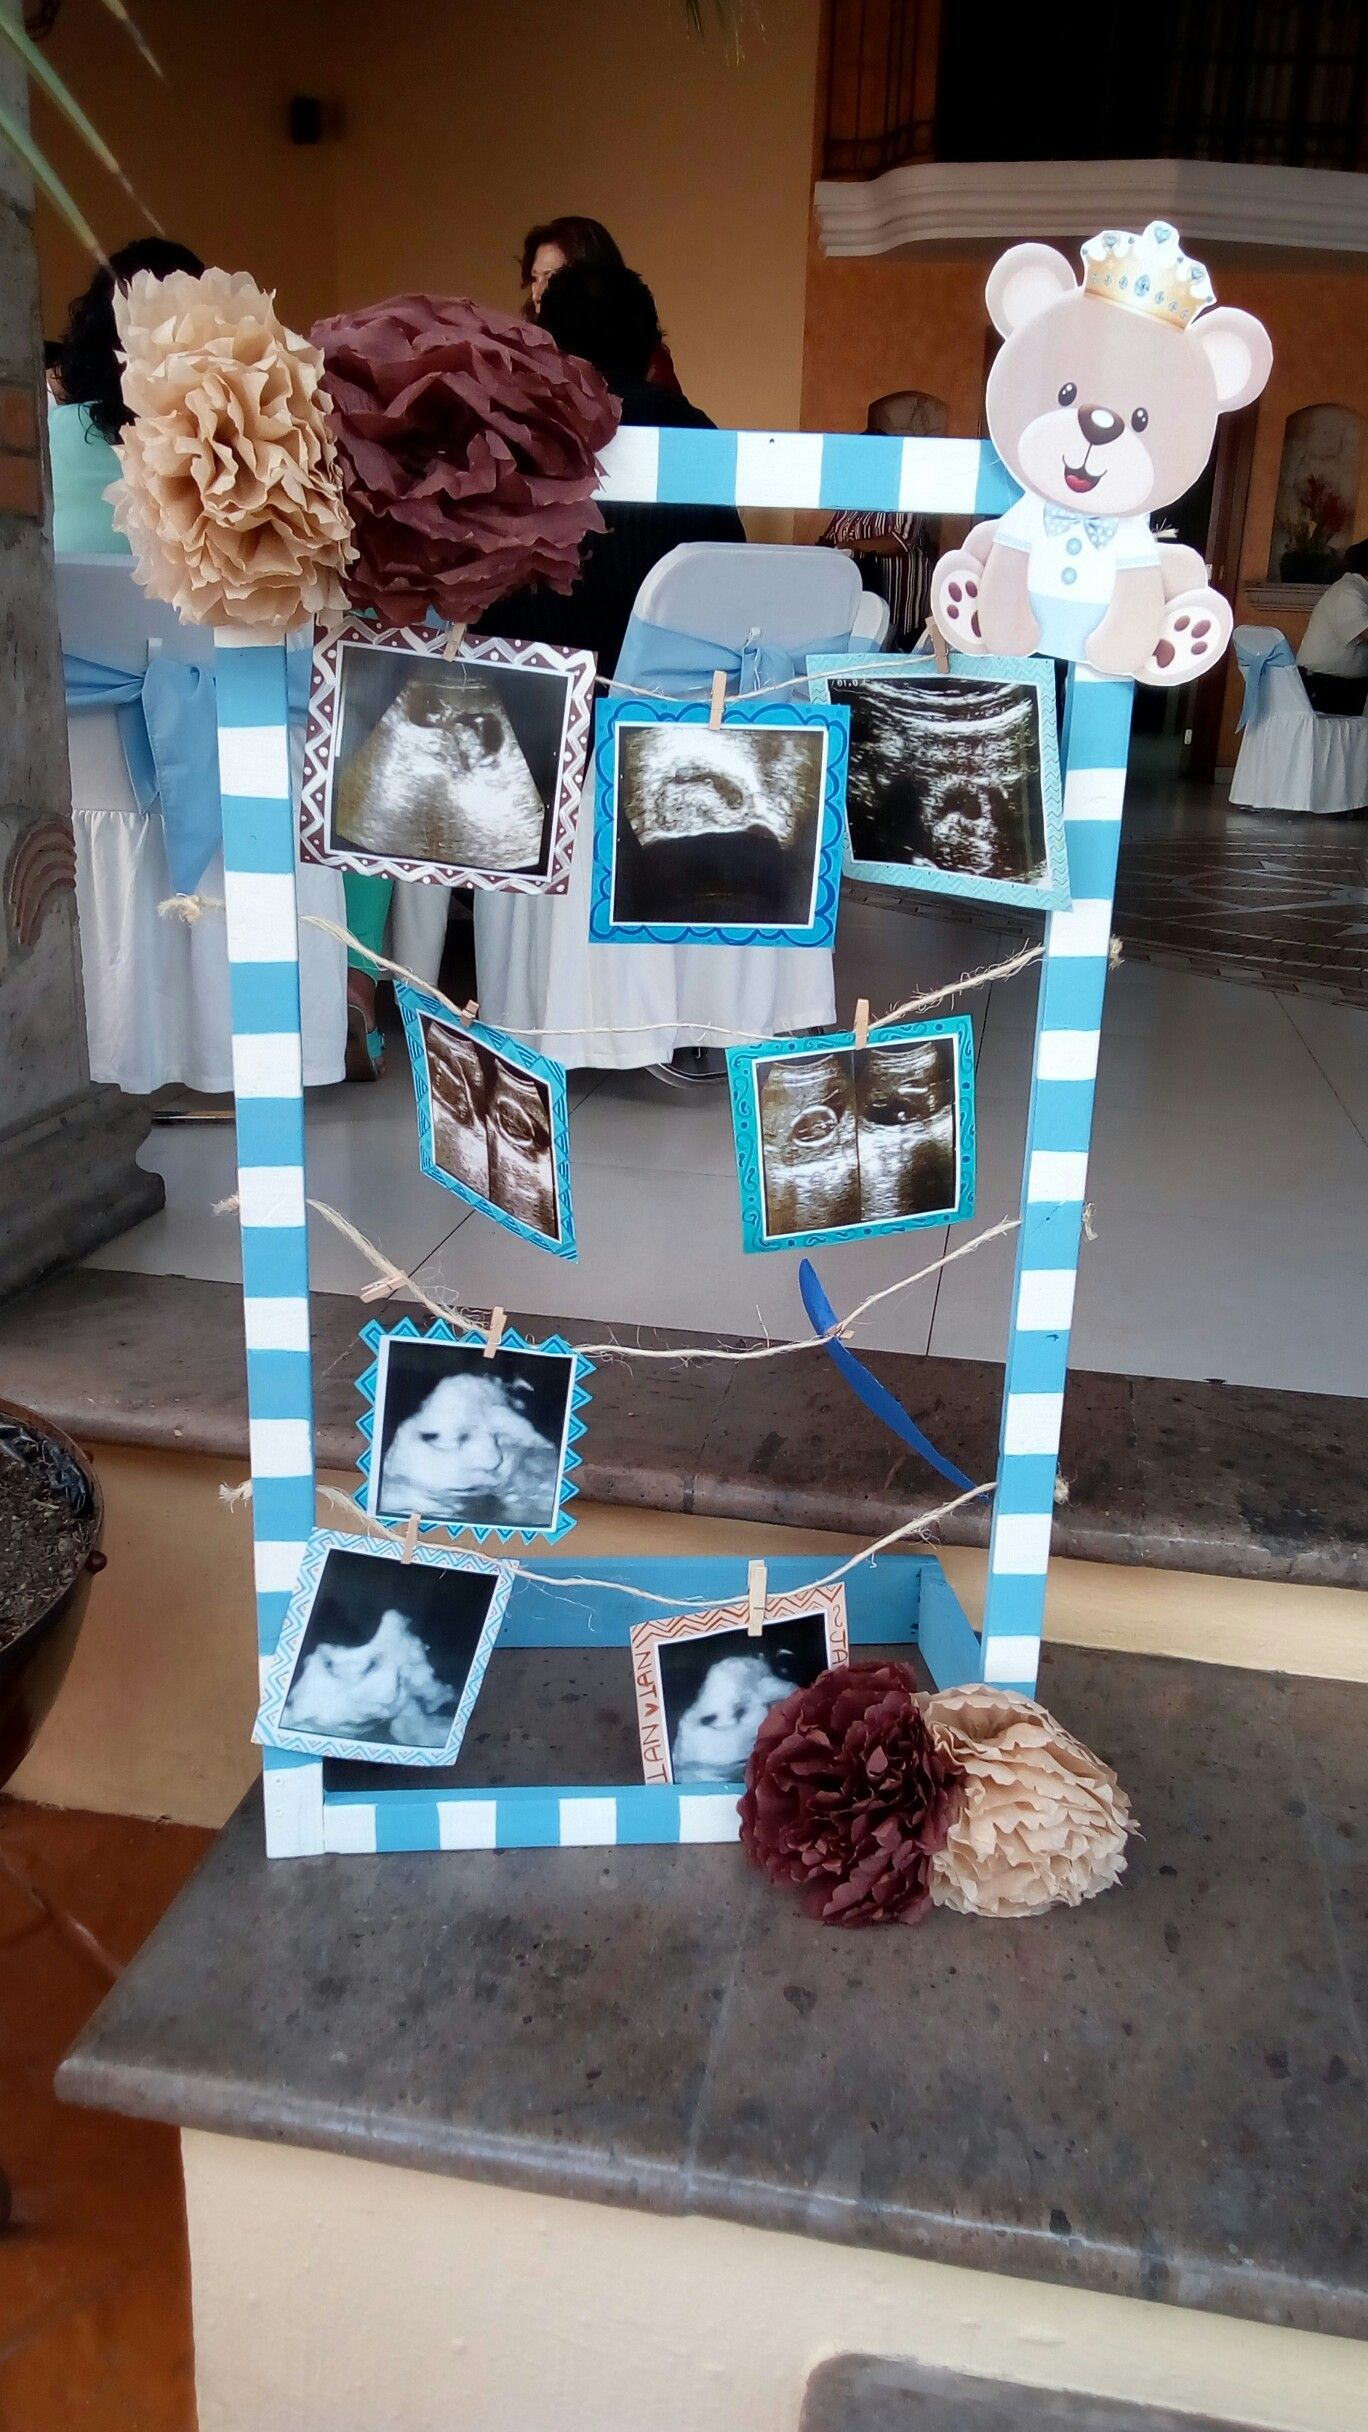 Pin De Karito Rakhandella En Baby Shower Temas De Baby Shower De Nino Baby Shower Carteles Decoraciones De Baby Shower Para Ninos